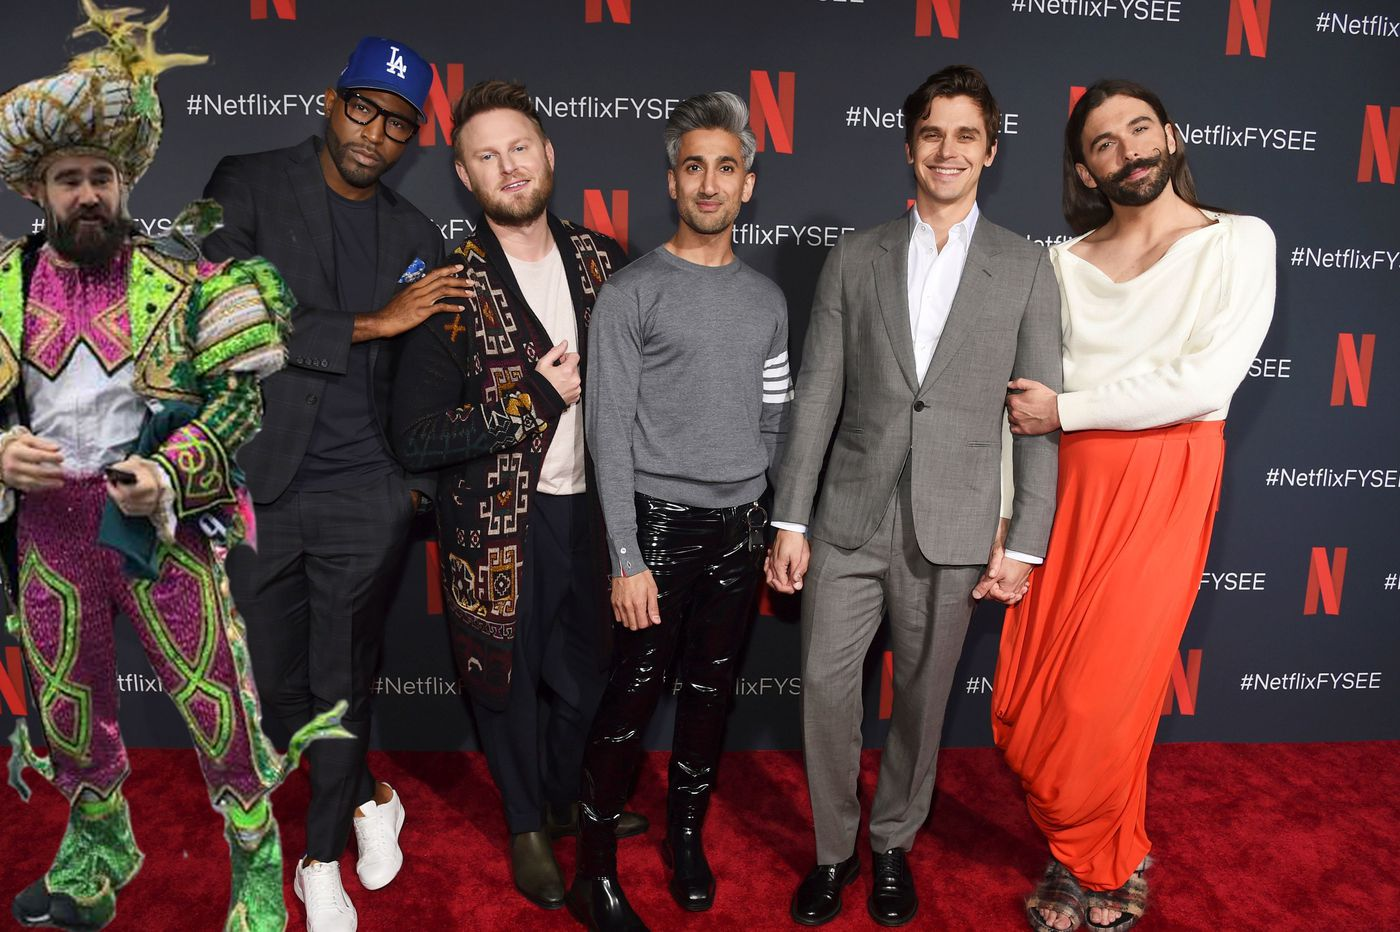 c0e483dd6a6 5 guys who should be on Netflix's Philly 'Queer Eye'